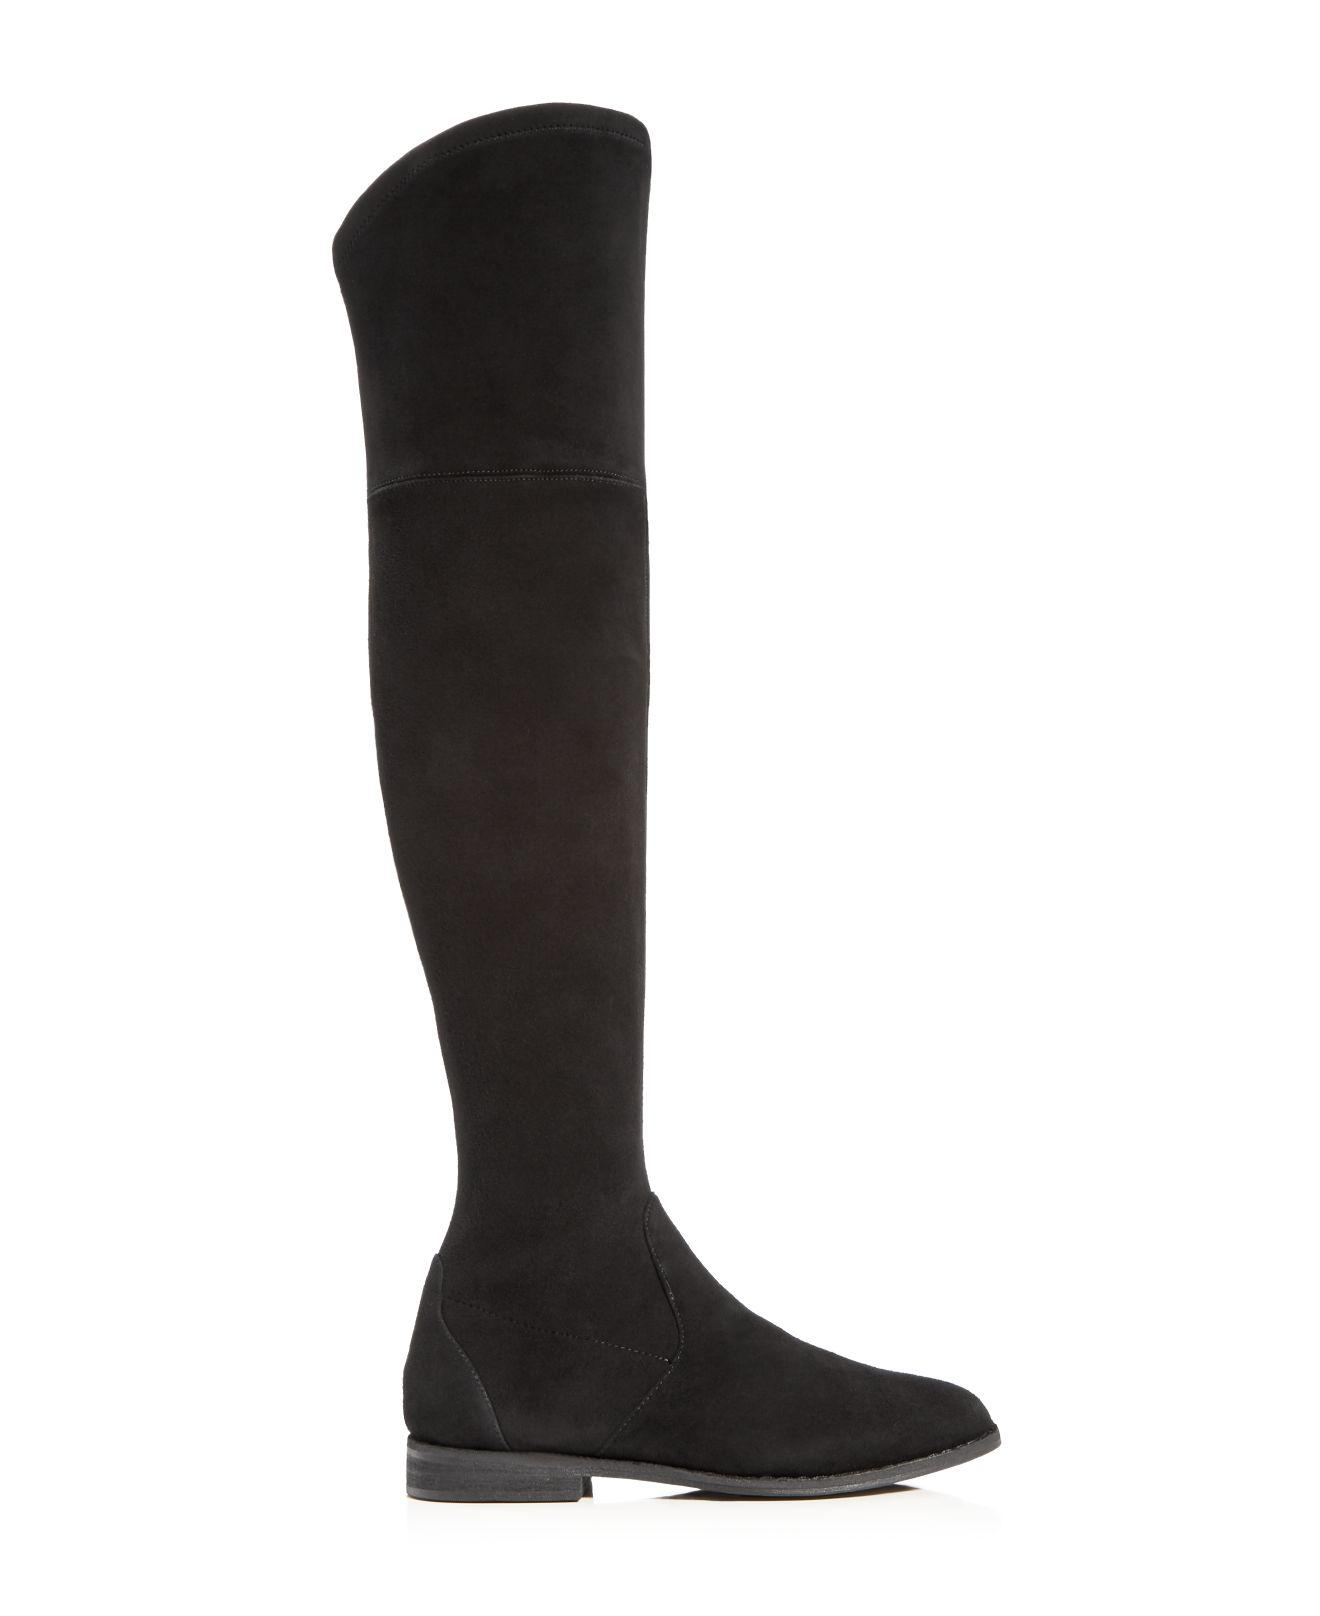 Gentle Souls Leather Emma Over The Knee Boots in Black